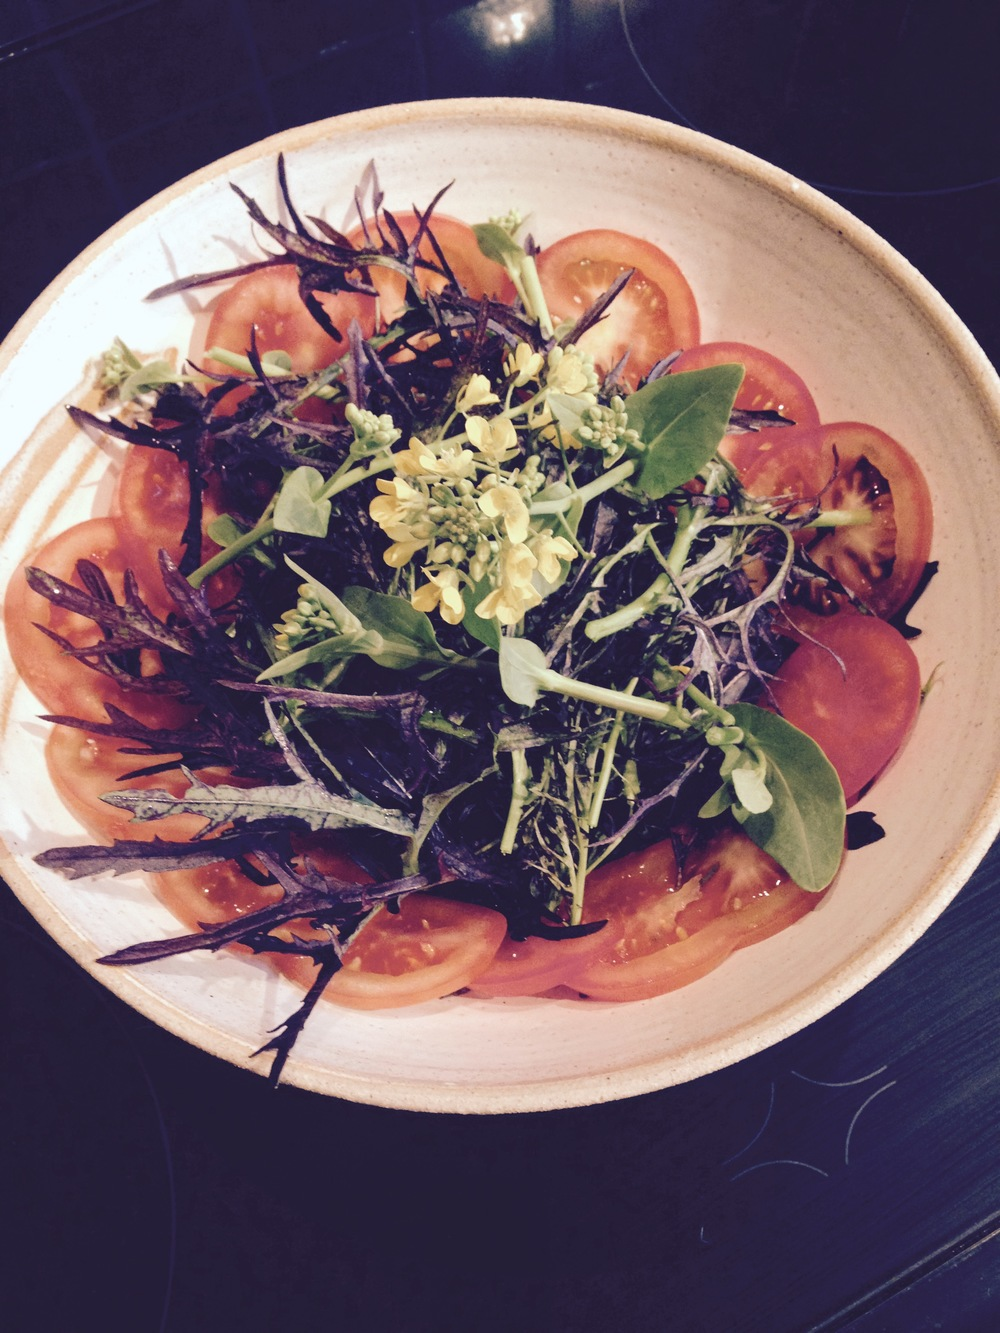 Tomato salad with red mizuna, flowering pak choi and sorrel leaves